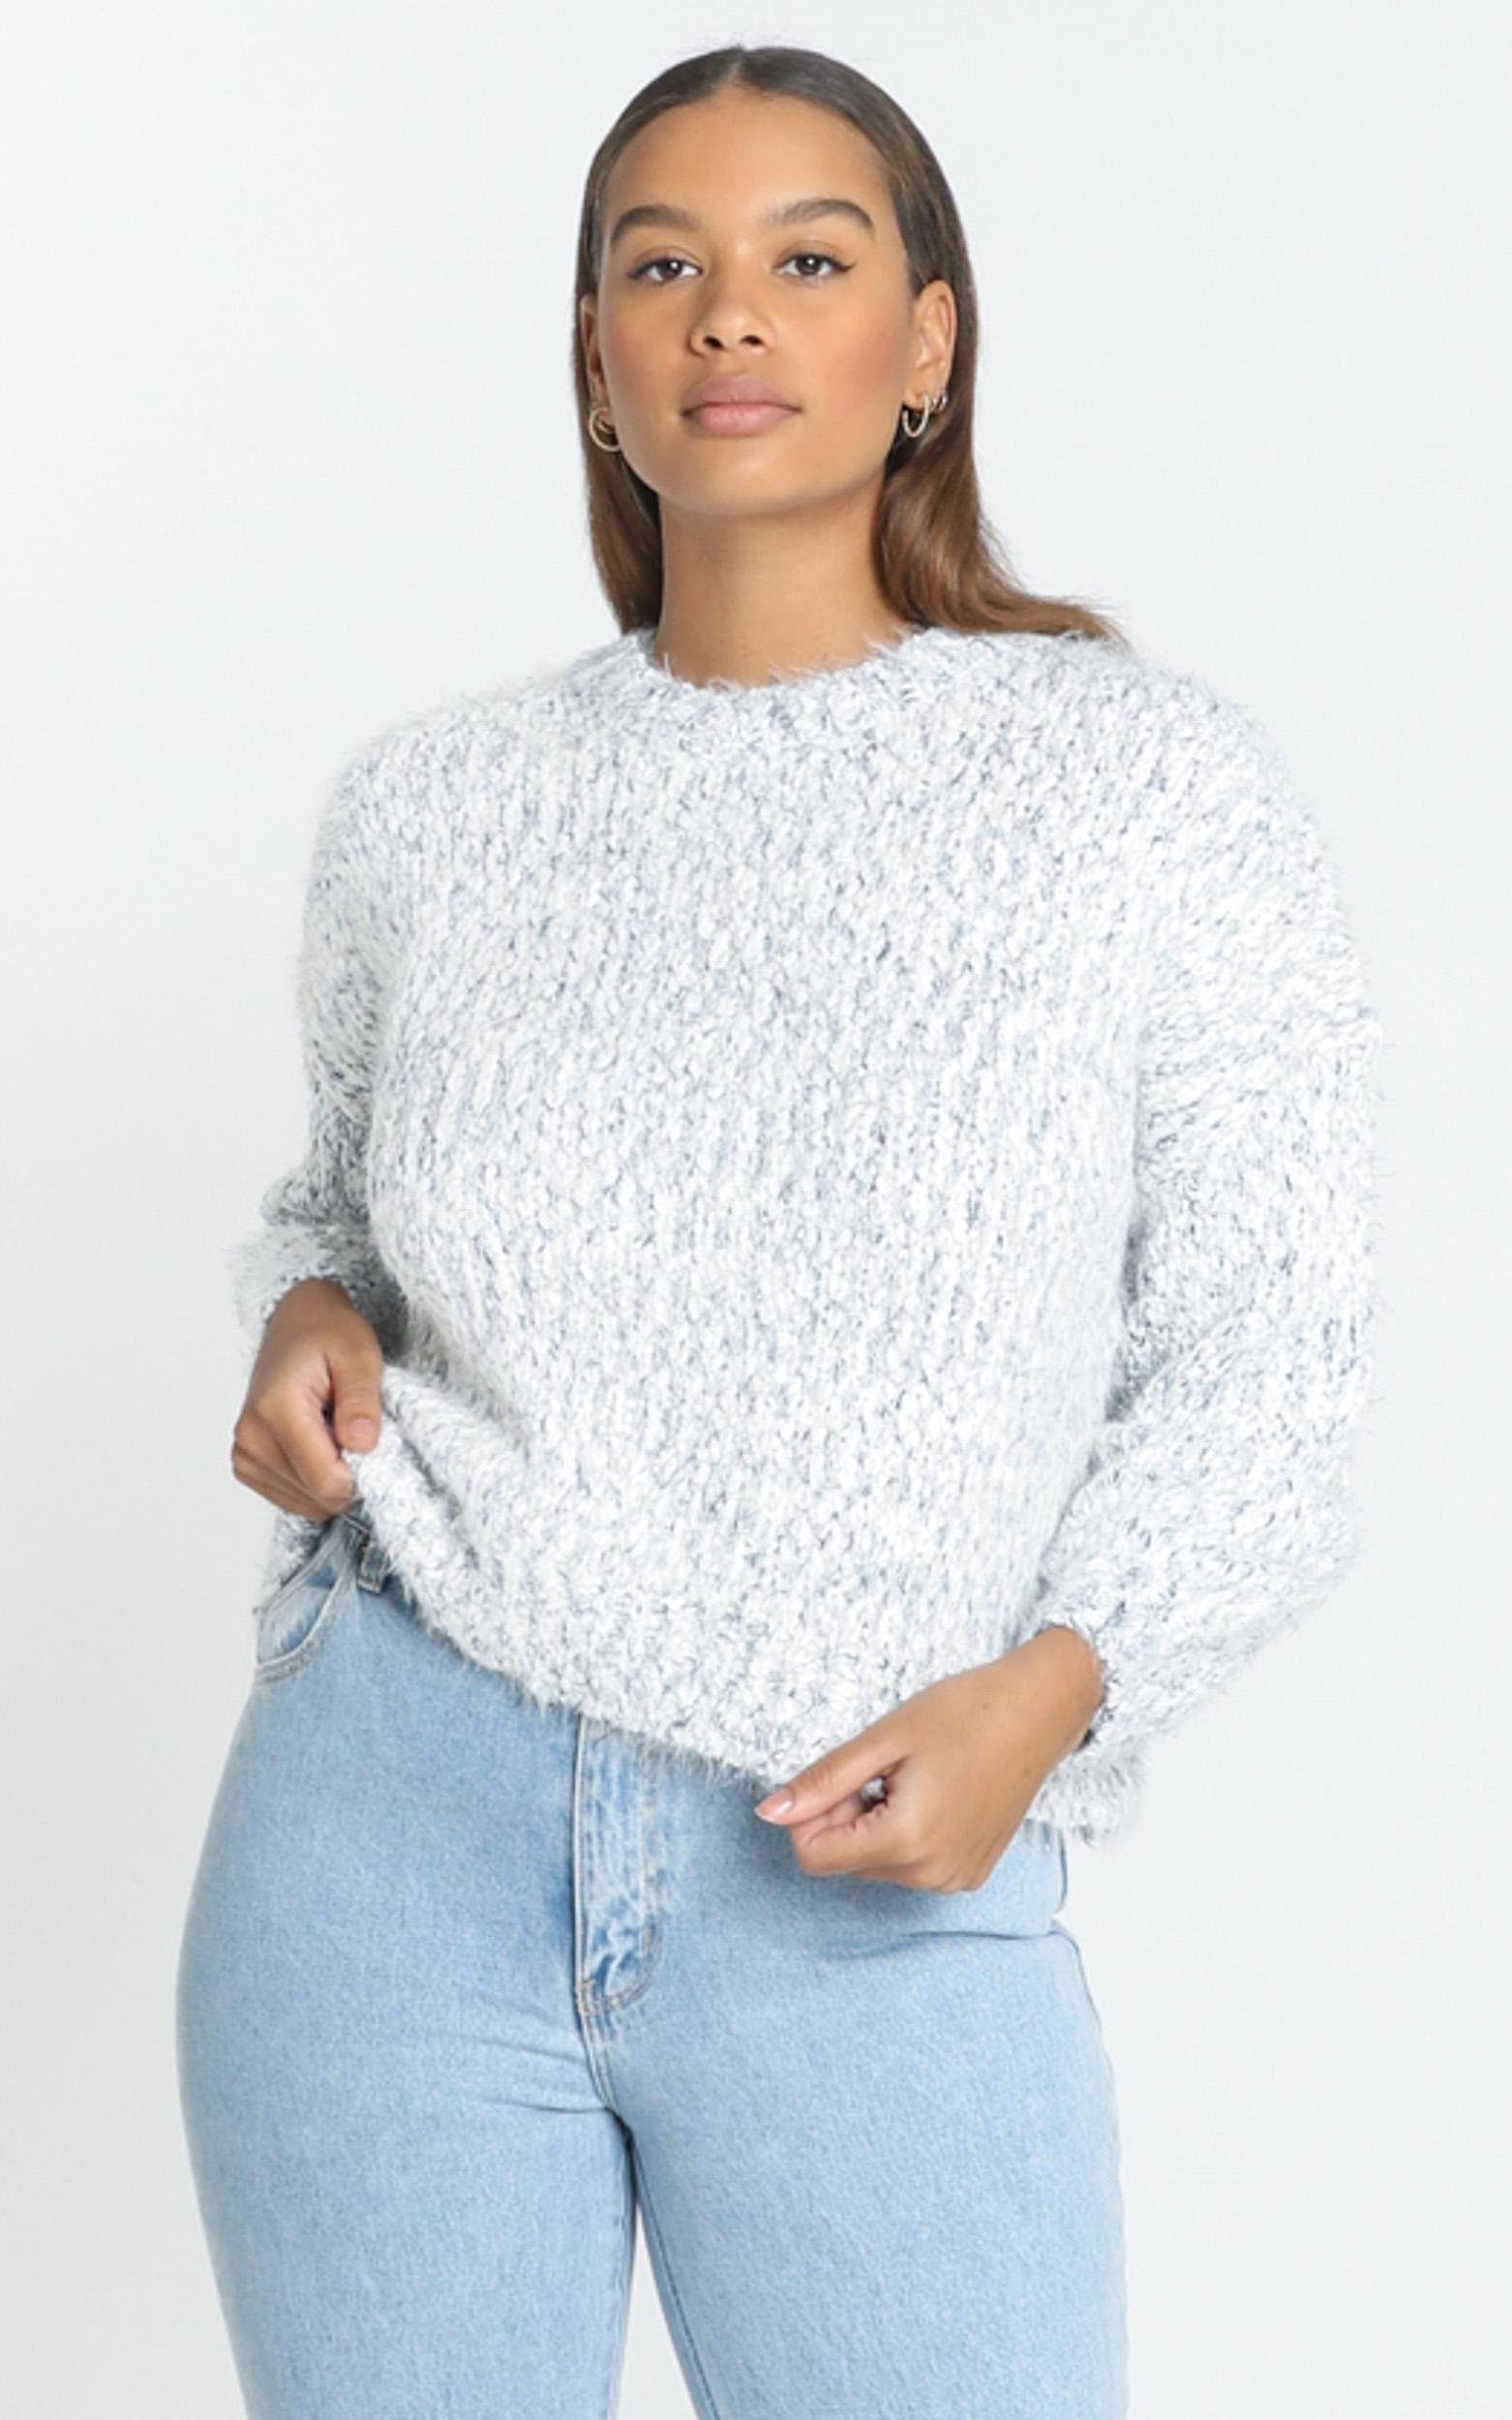 Gwyneth Jumper in White Marle - M/L, White, hi-res image number null